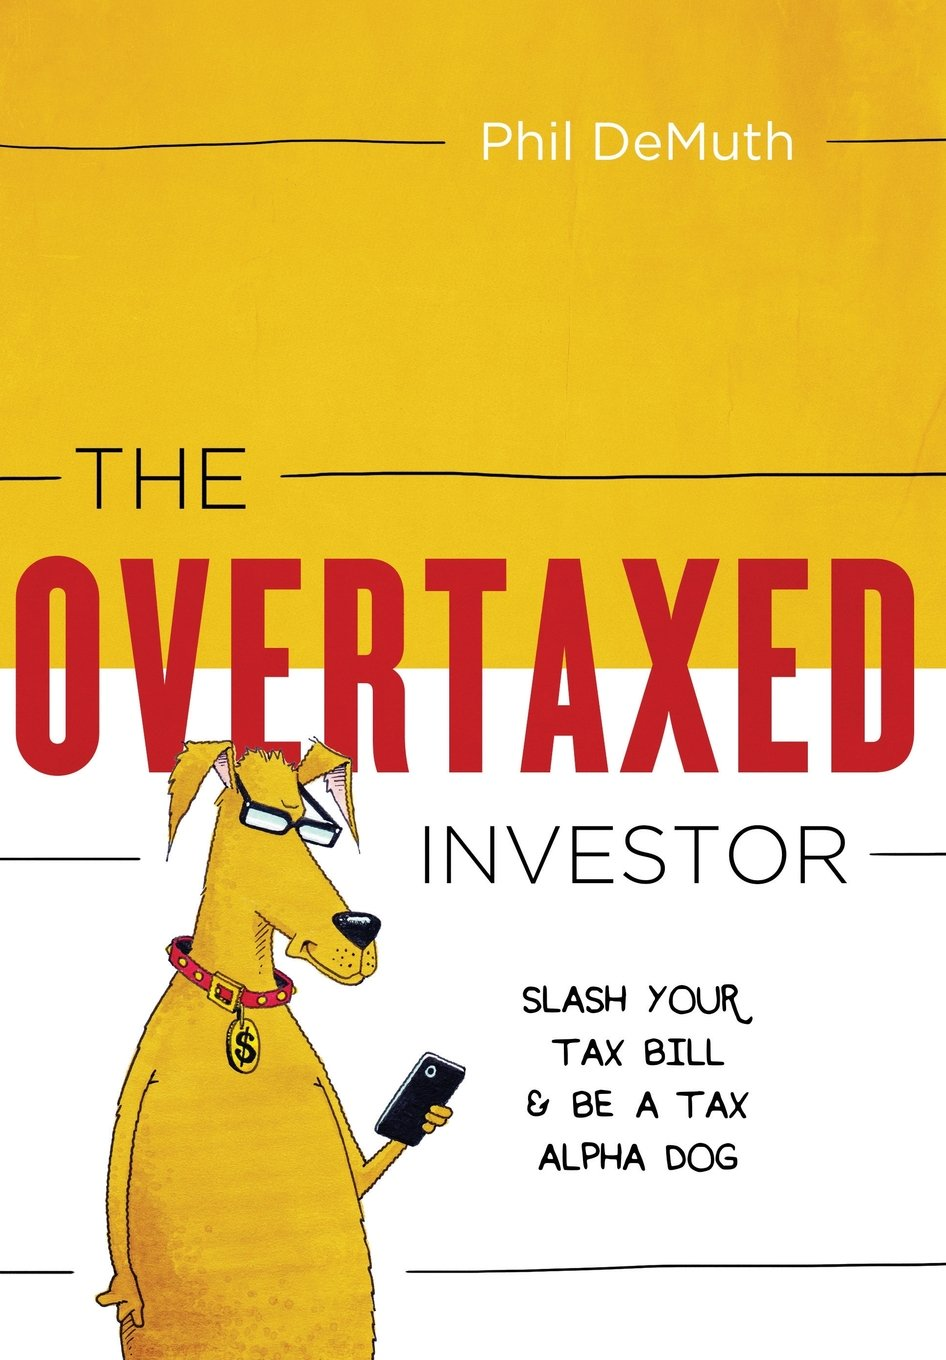 overtaxed investor